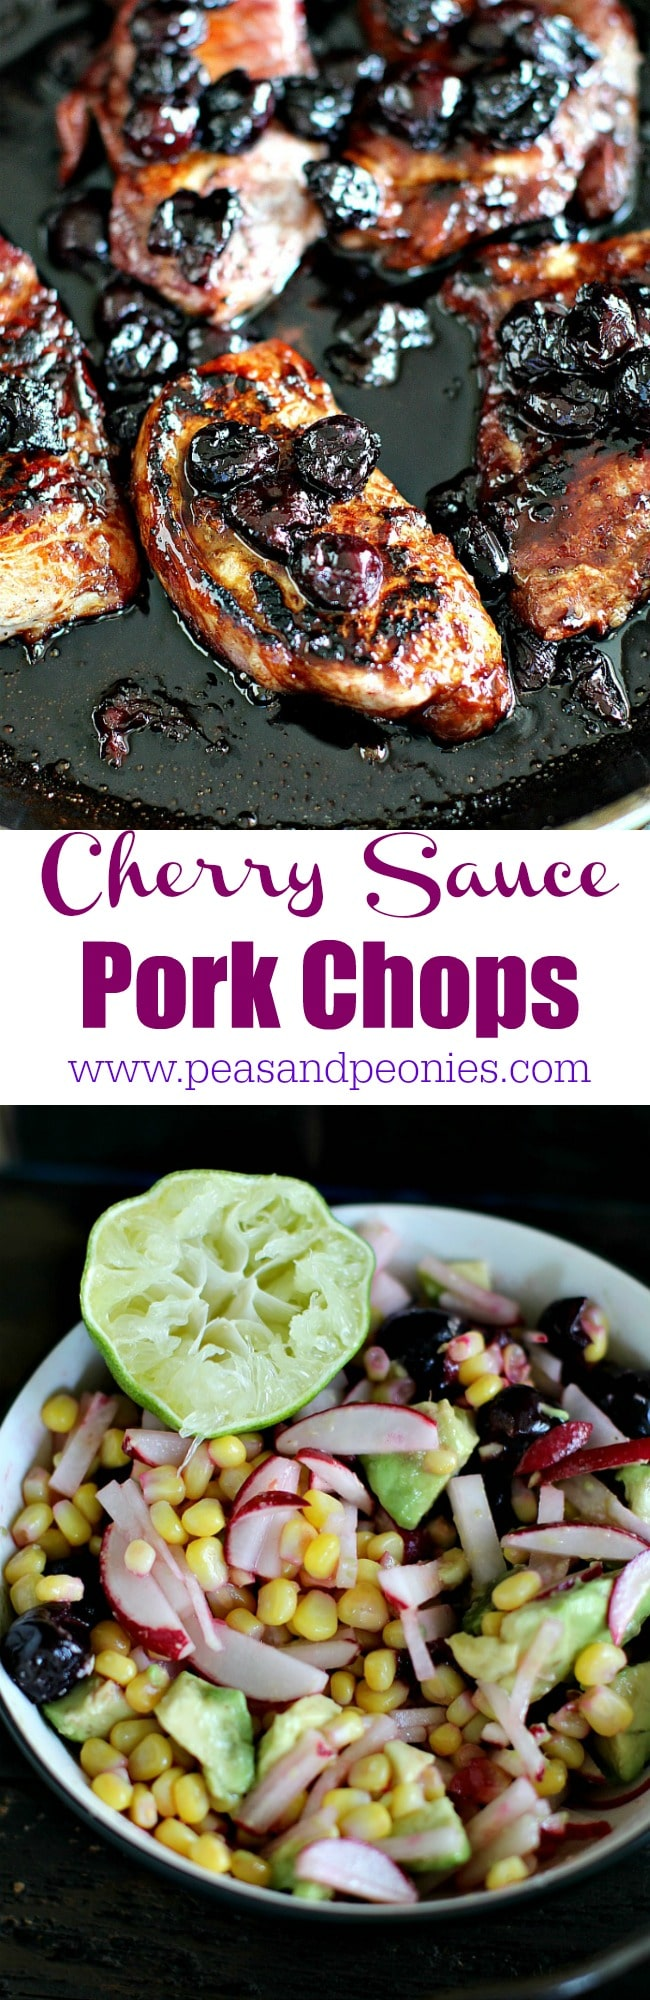 Cherry Sauce Pork Chops are tender, juicy and ready in less than 30 minutes, served with fresh Cherry Corn Salsa with crunchy radishes and creamy avocado.